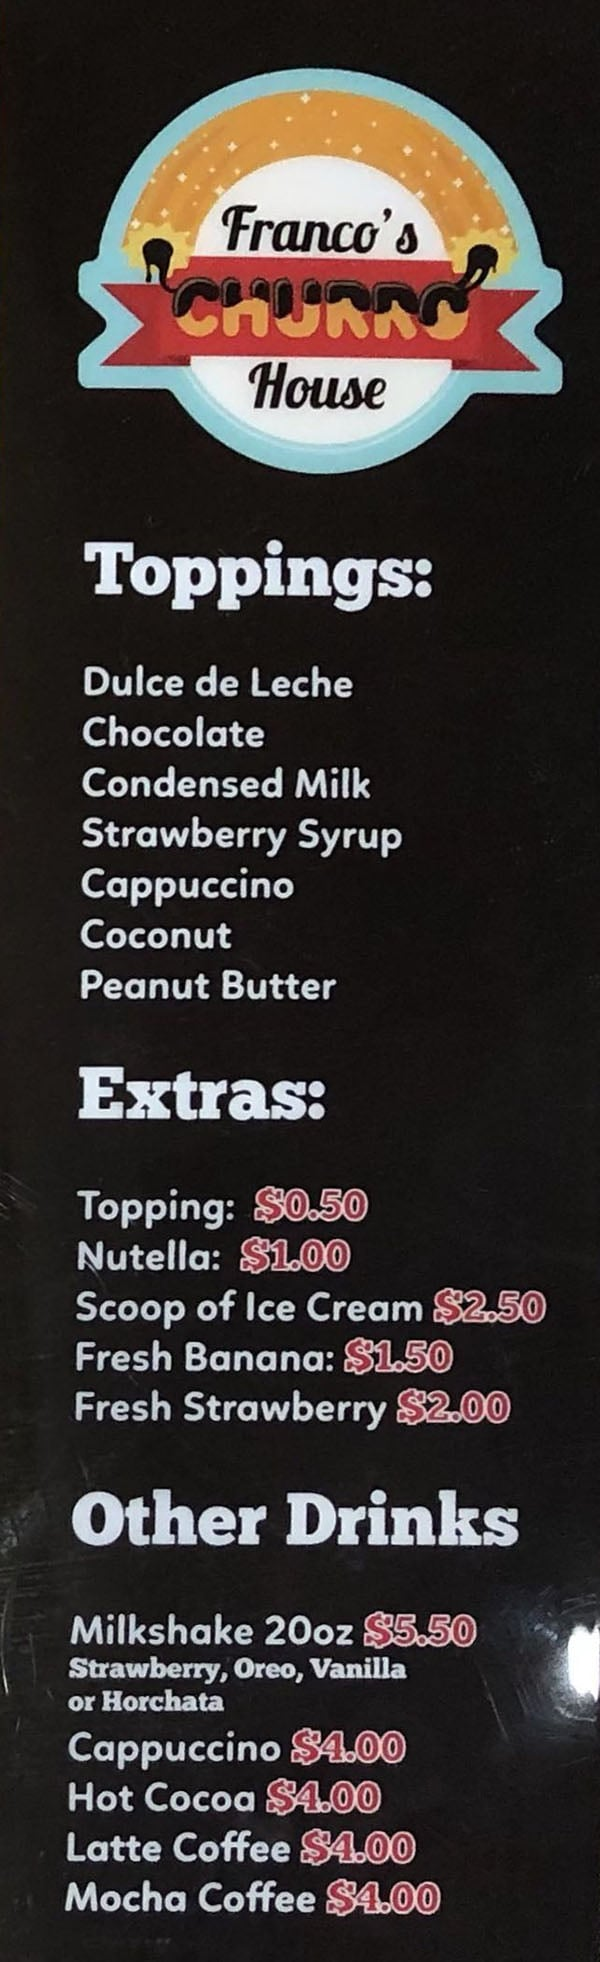 Franco's Churro House menu - page three